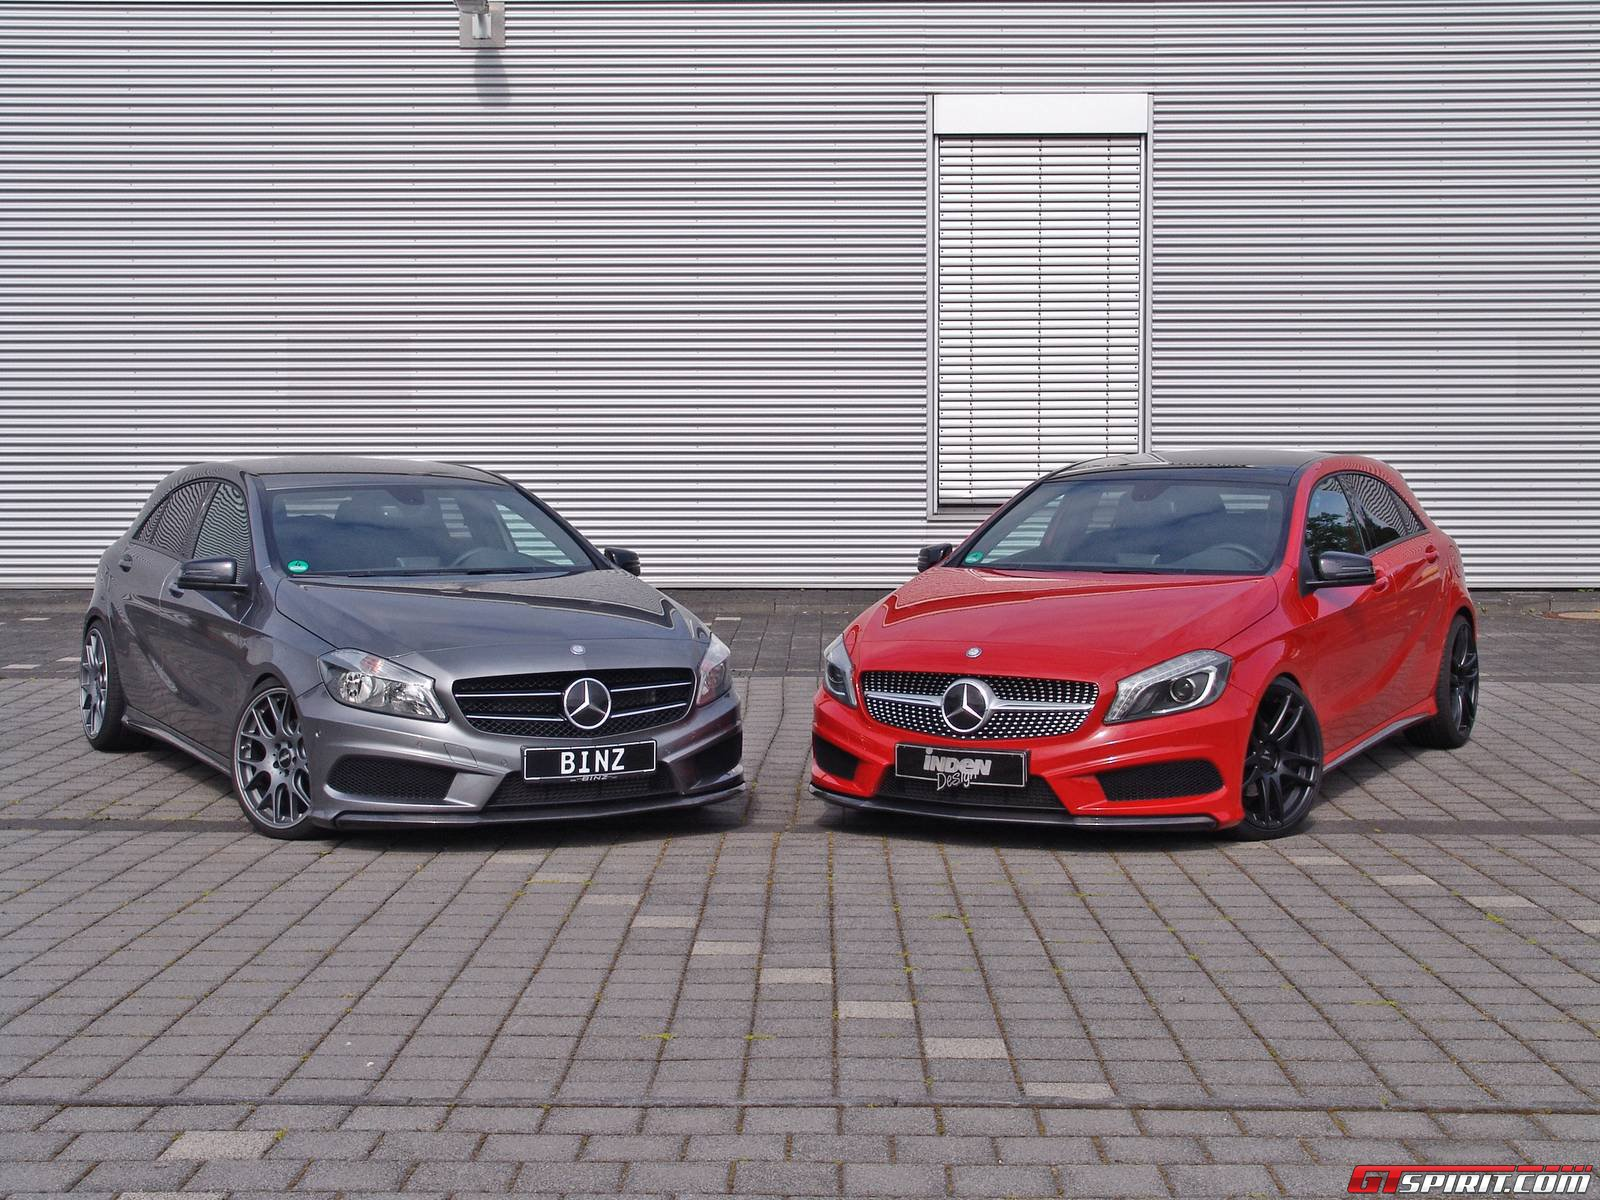 official mercedes benz a class with amg package by inden design and binz sport gtspirit. Black Bedroom Furniture Sets. Home Design Ideas